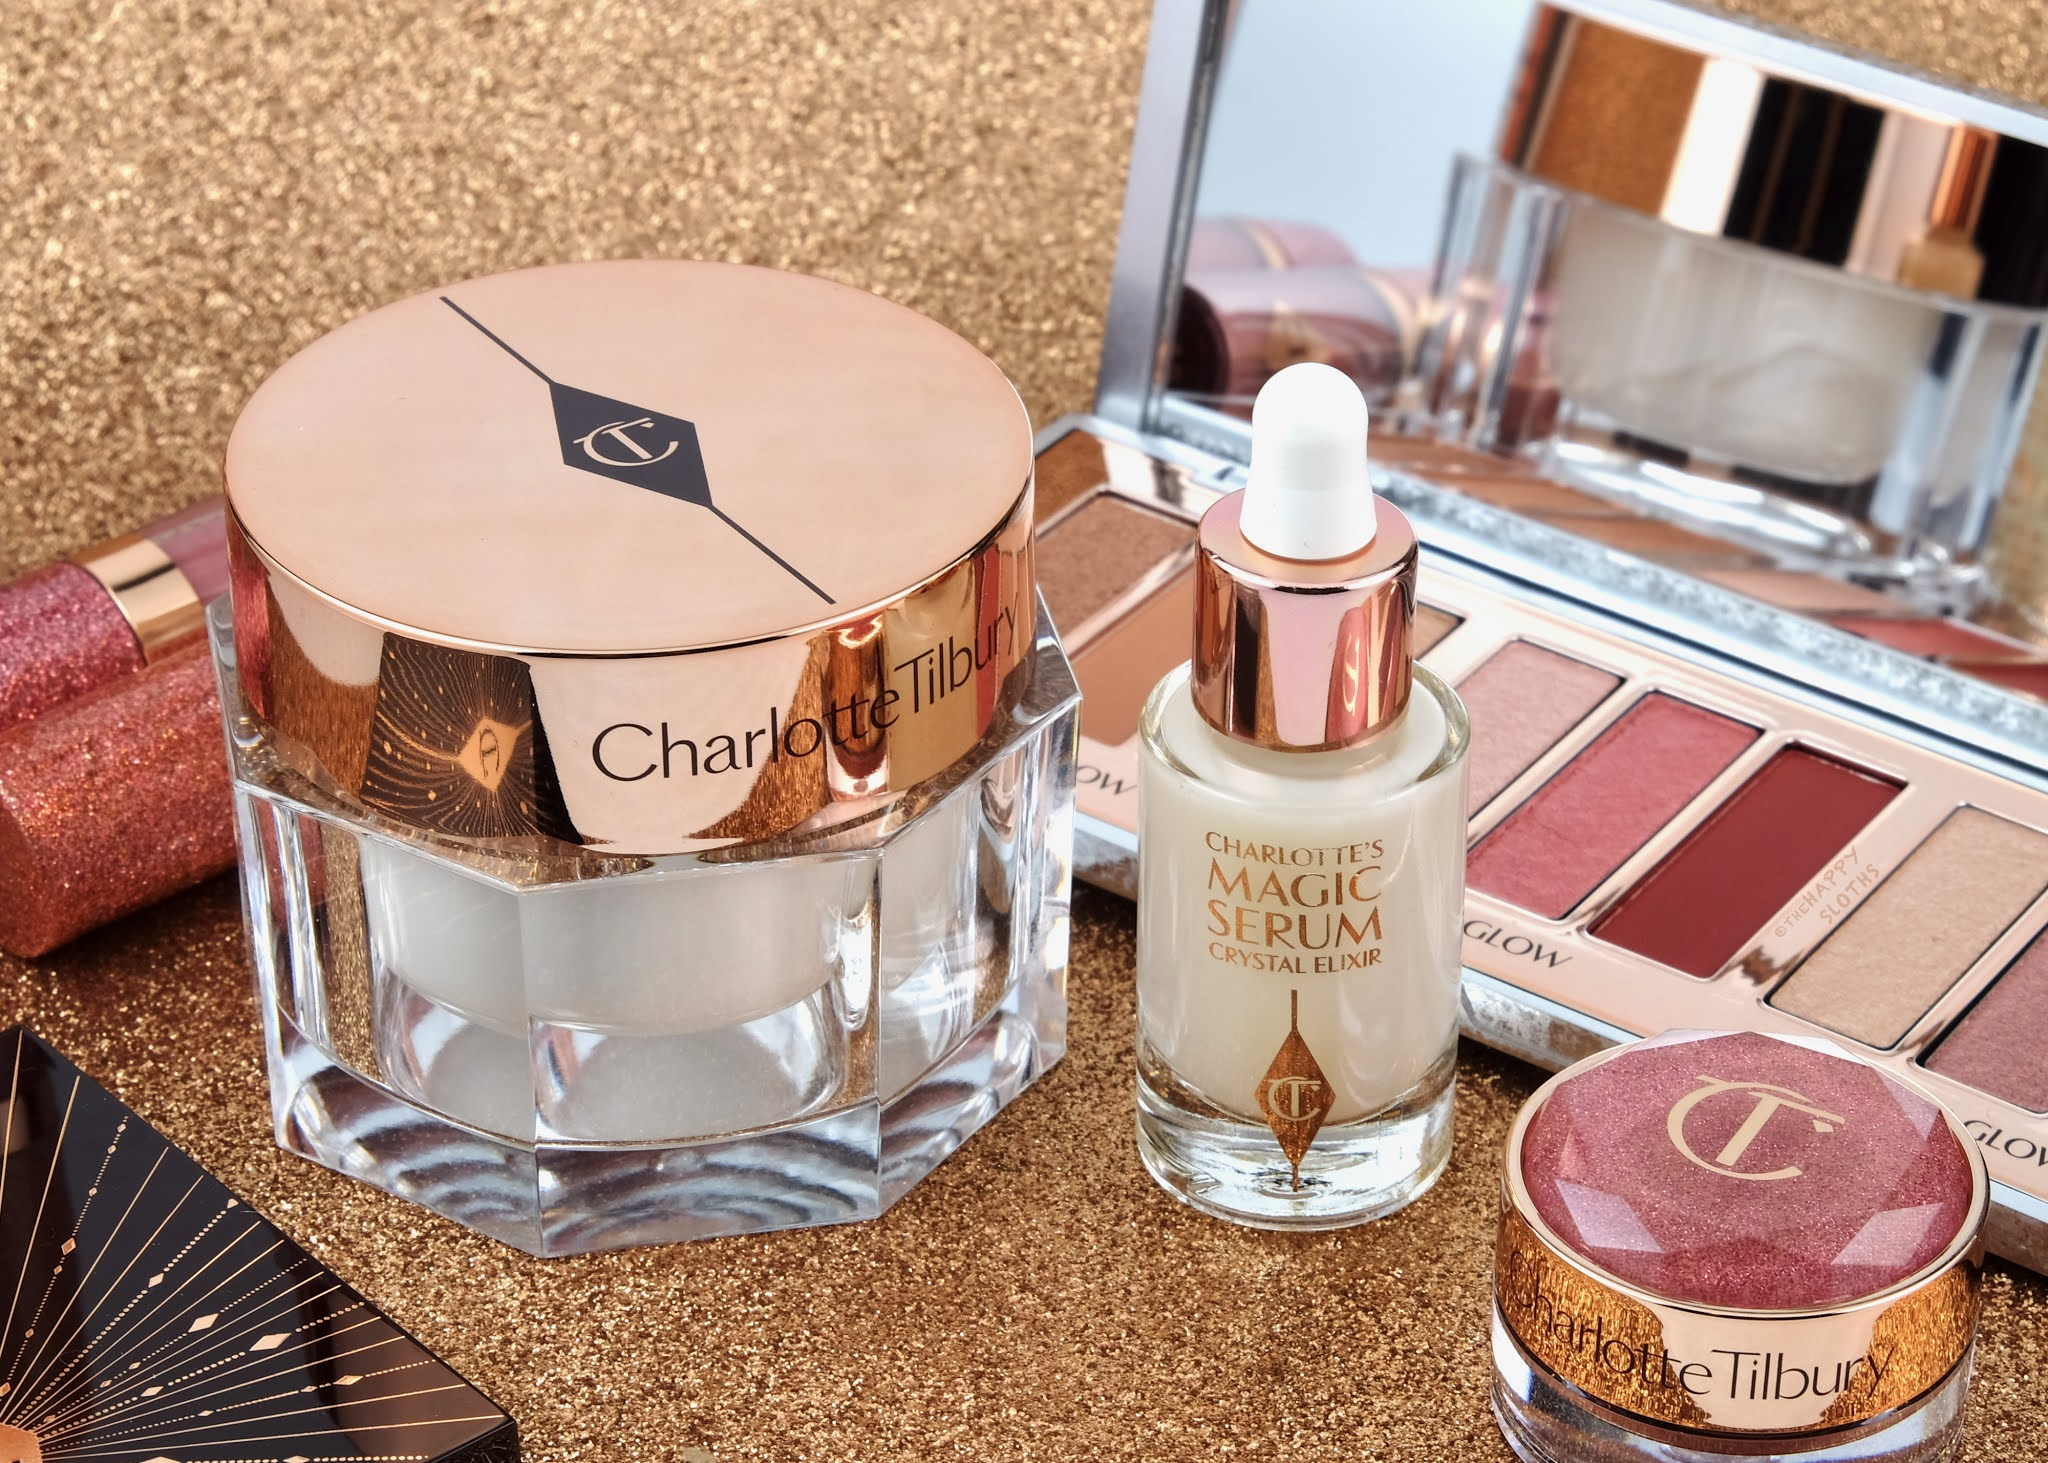 Charlotte Tilbury | Holiday 2020 Charlotte's Magic Skin Duo: Review